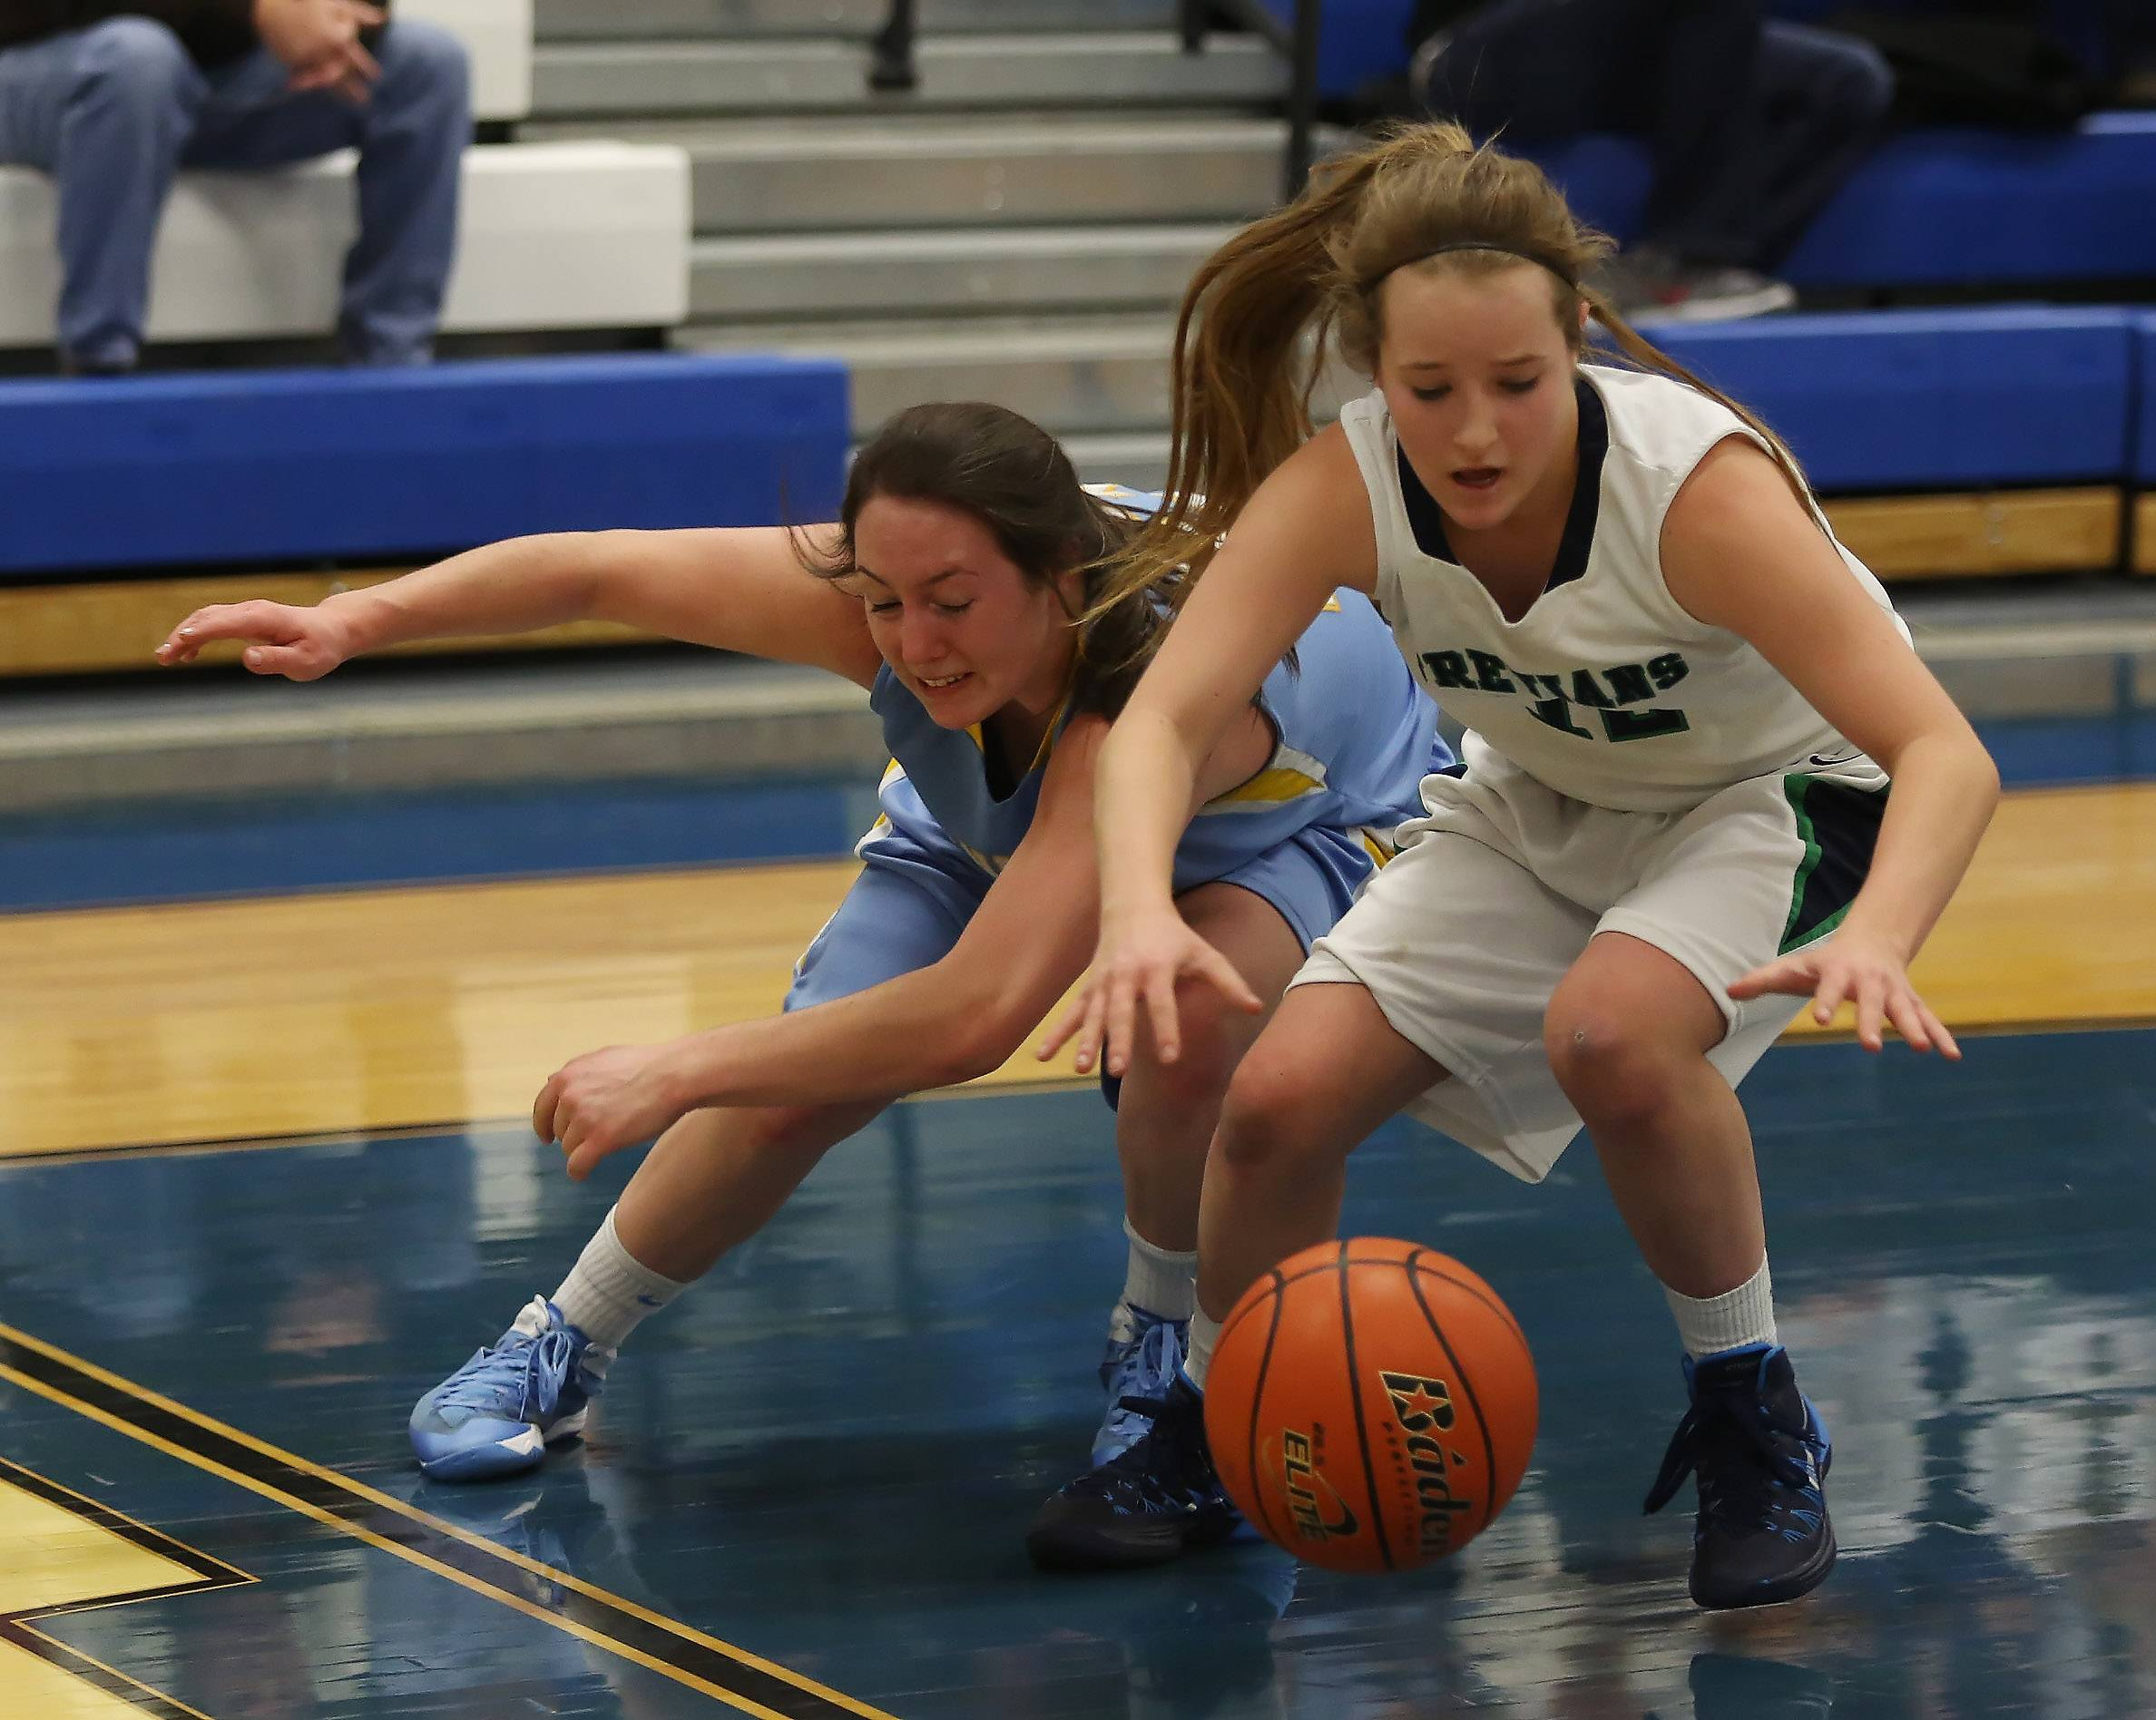 Maine West guard Abbey Herling, left, battles New Trier guard Megan Neuhaus for a loose ball during Monday's Class 4A sectional semifinal at Maine East.